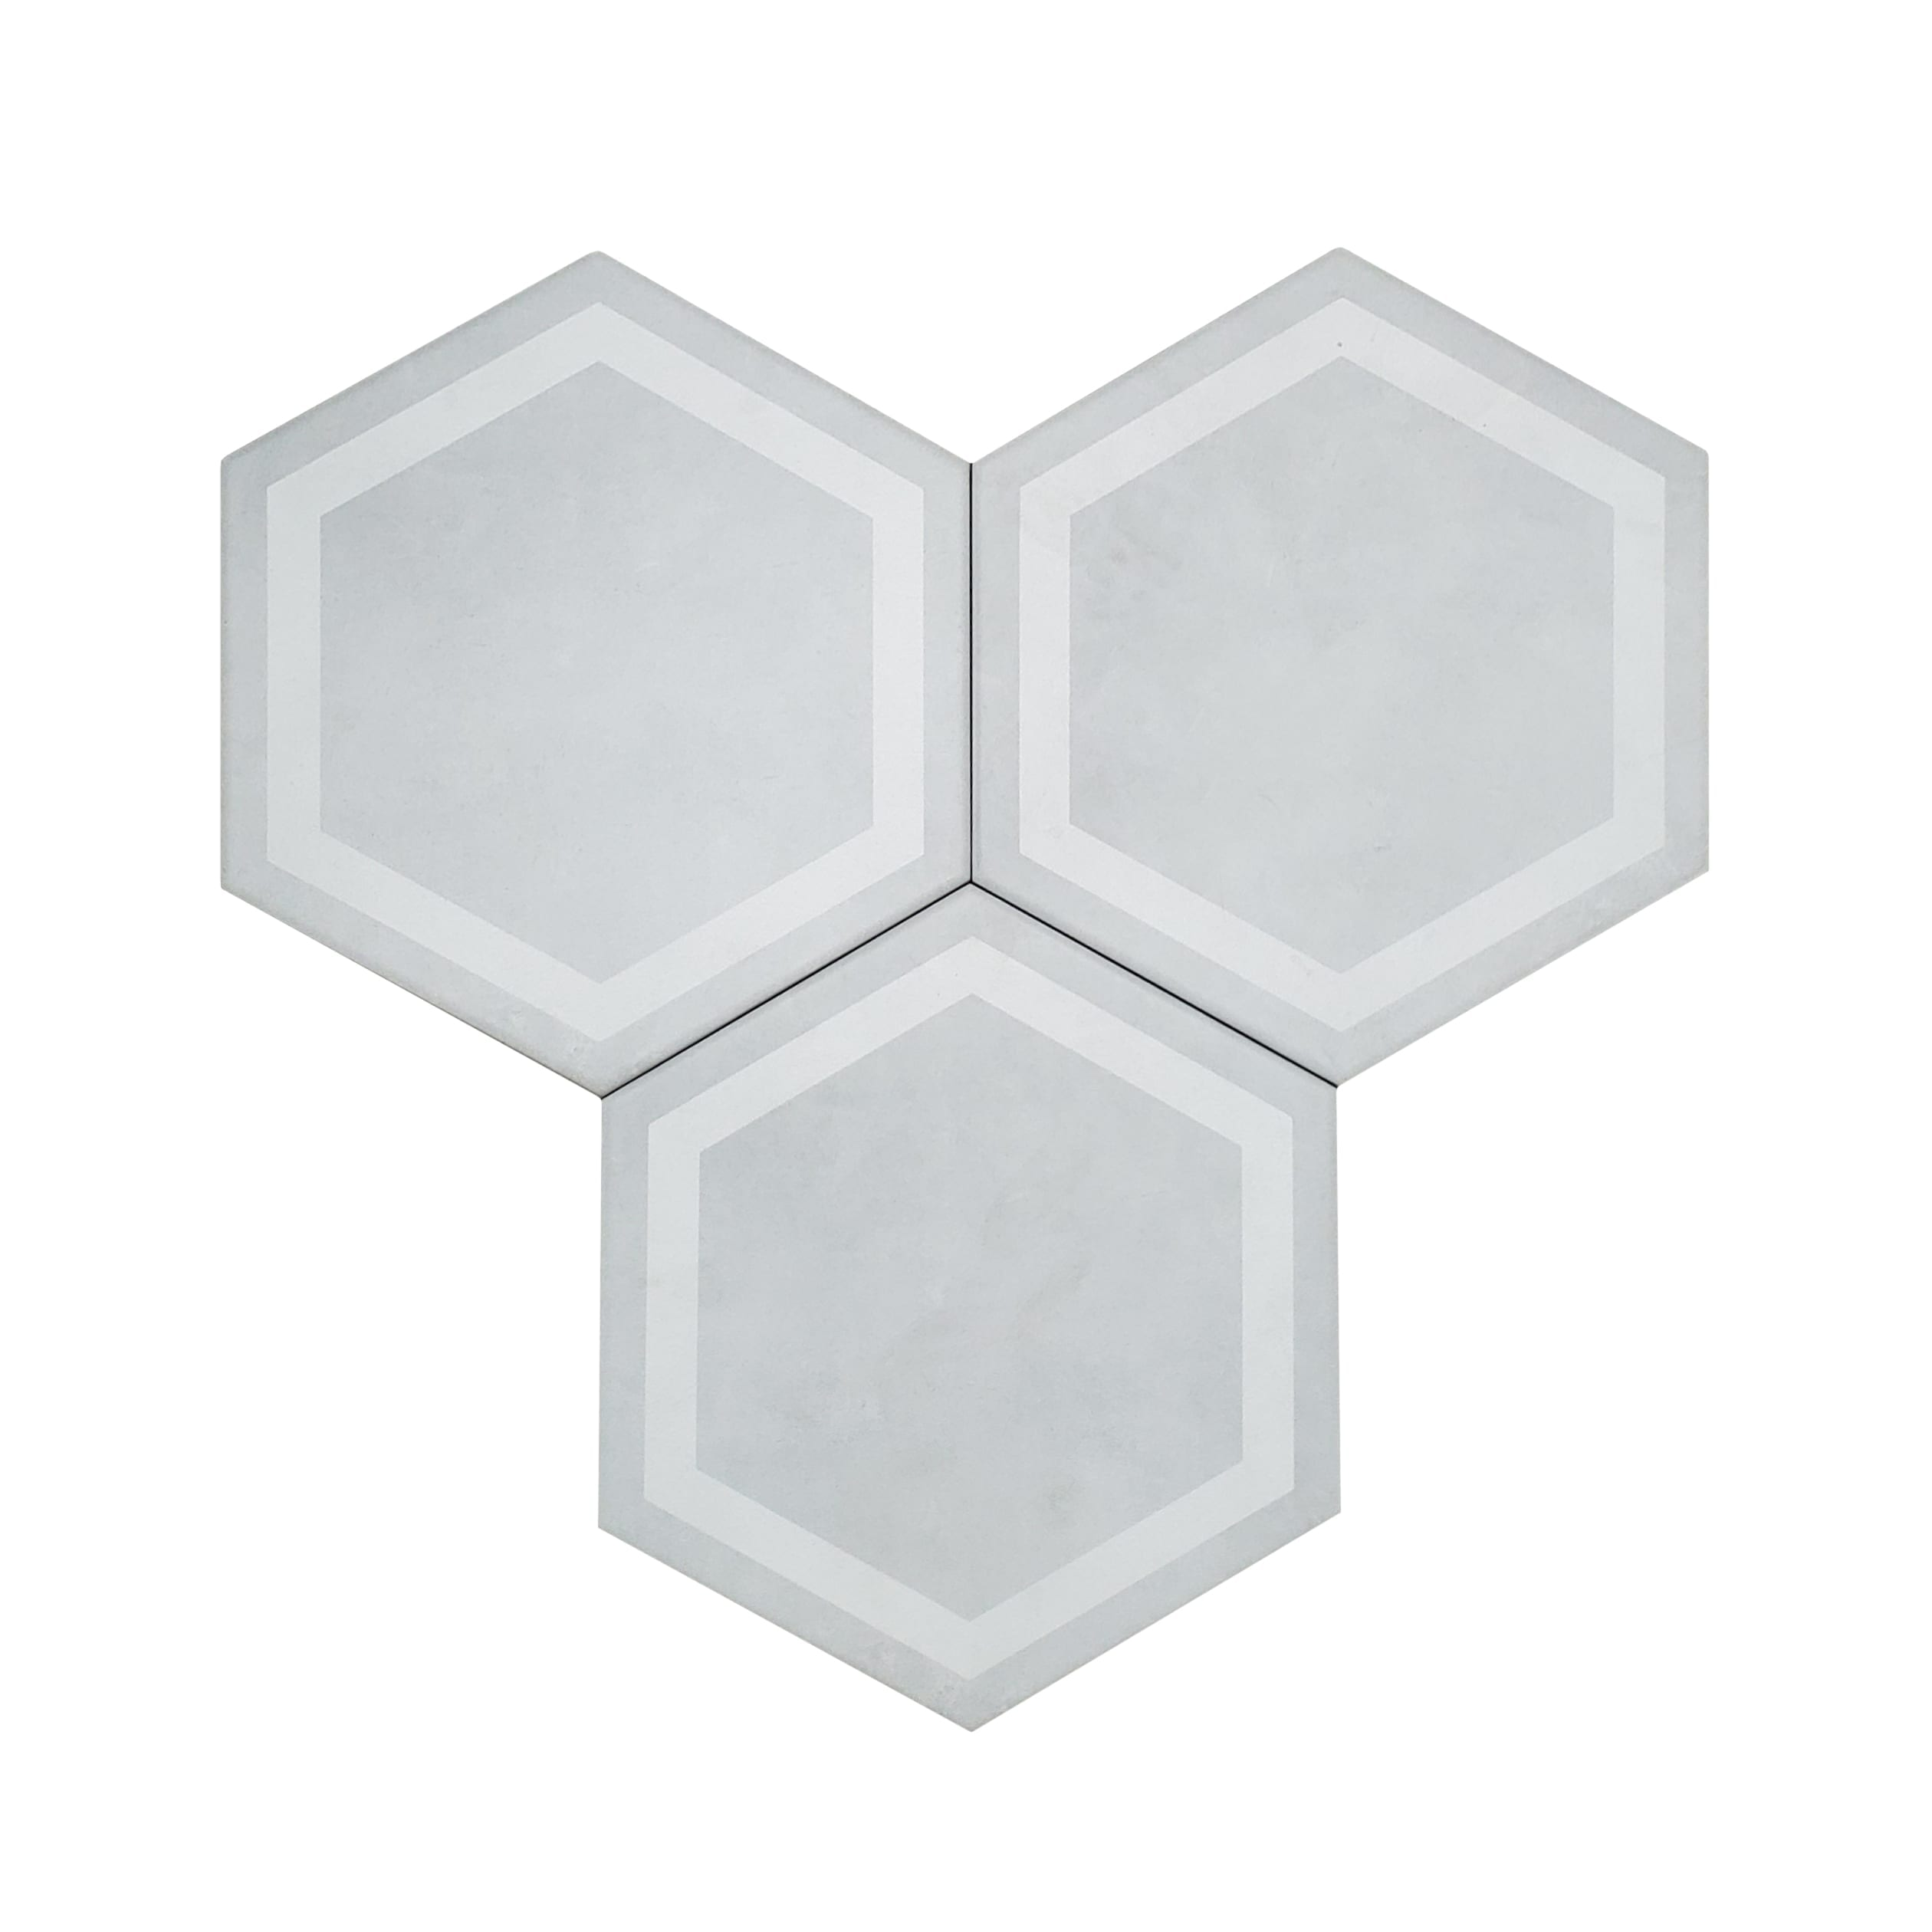 7×8 Form Hexagon Wall or Floor_Ivory-3.89